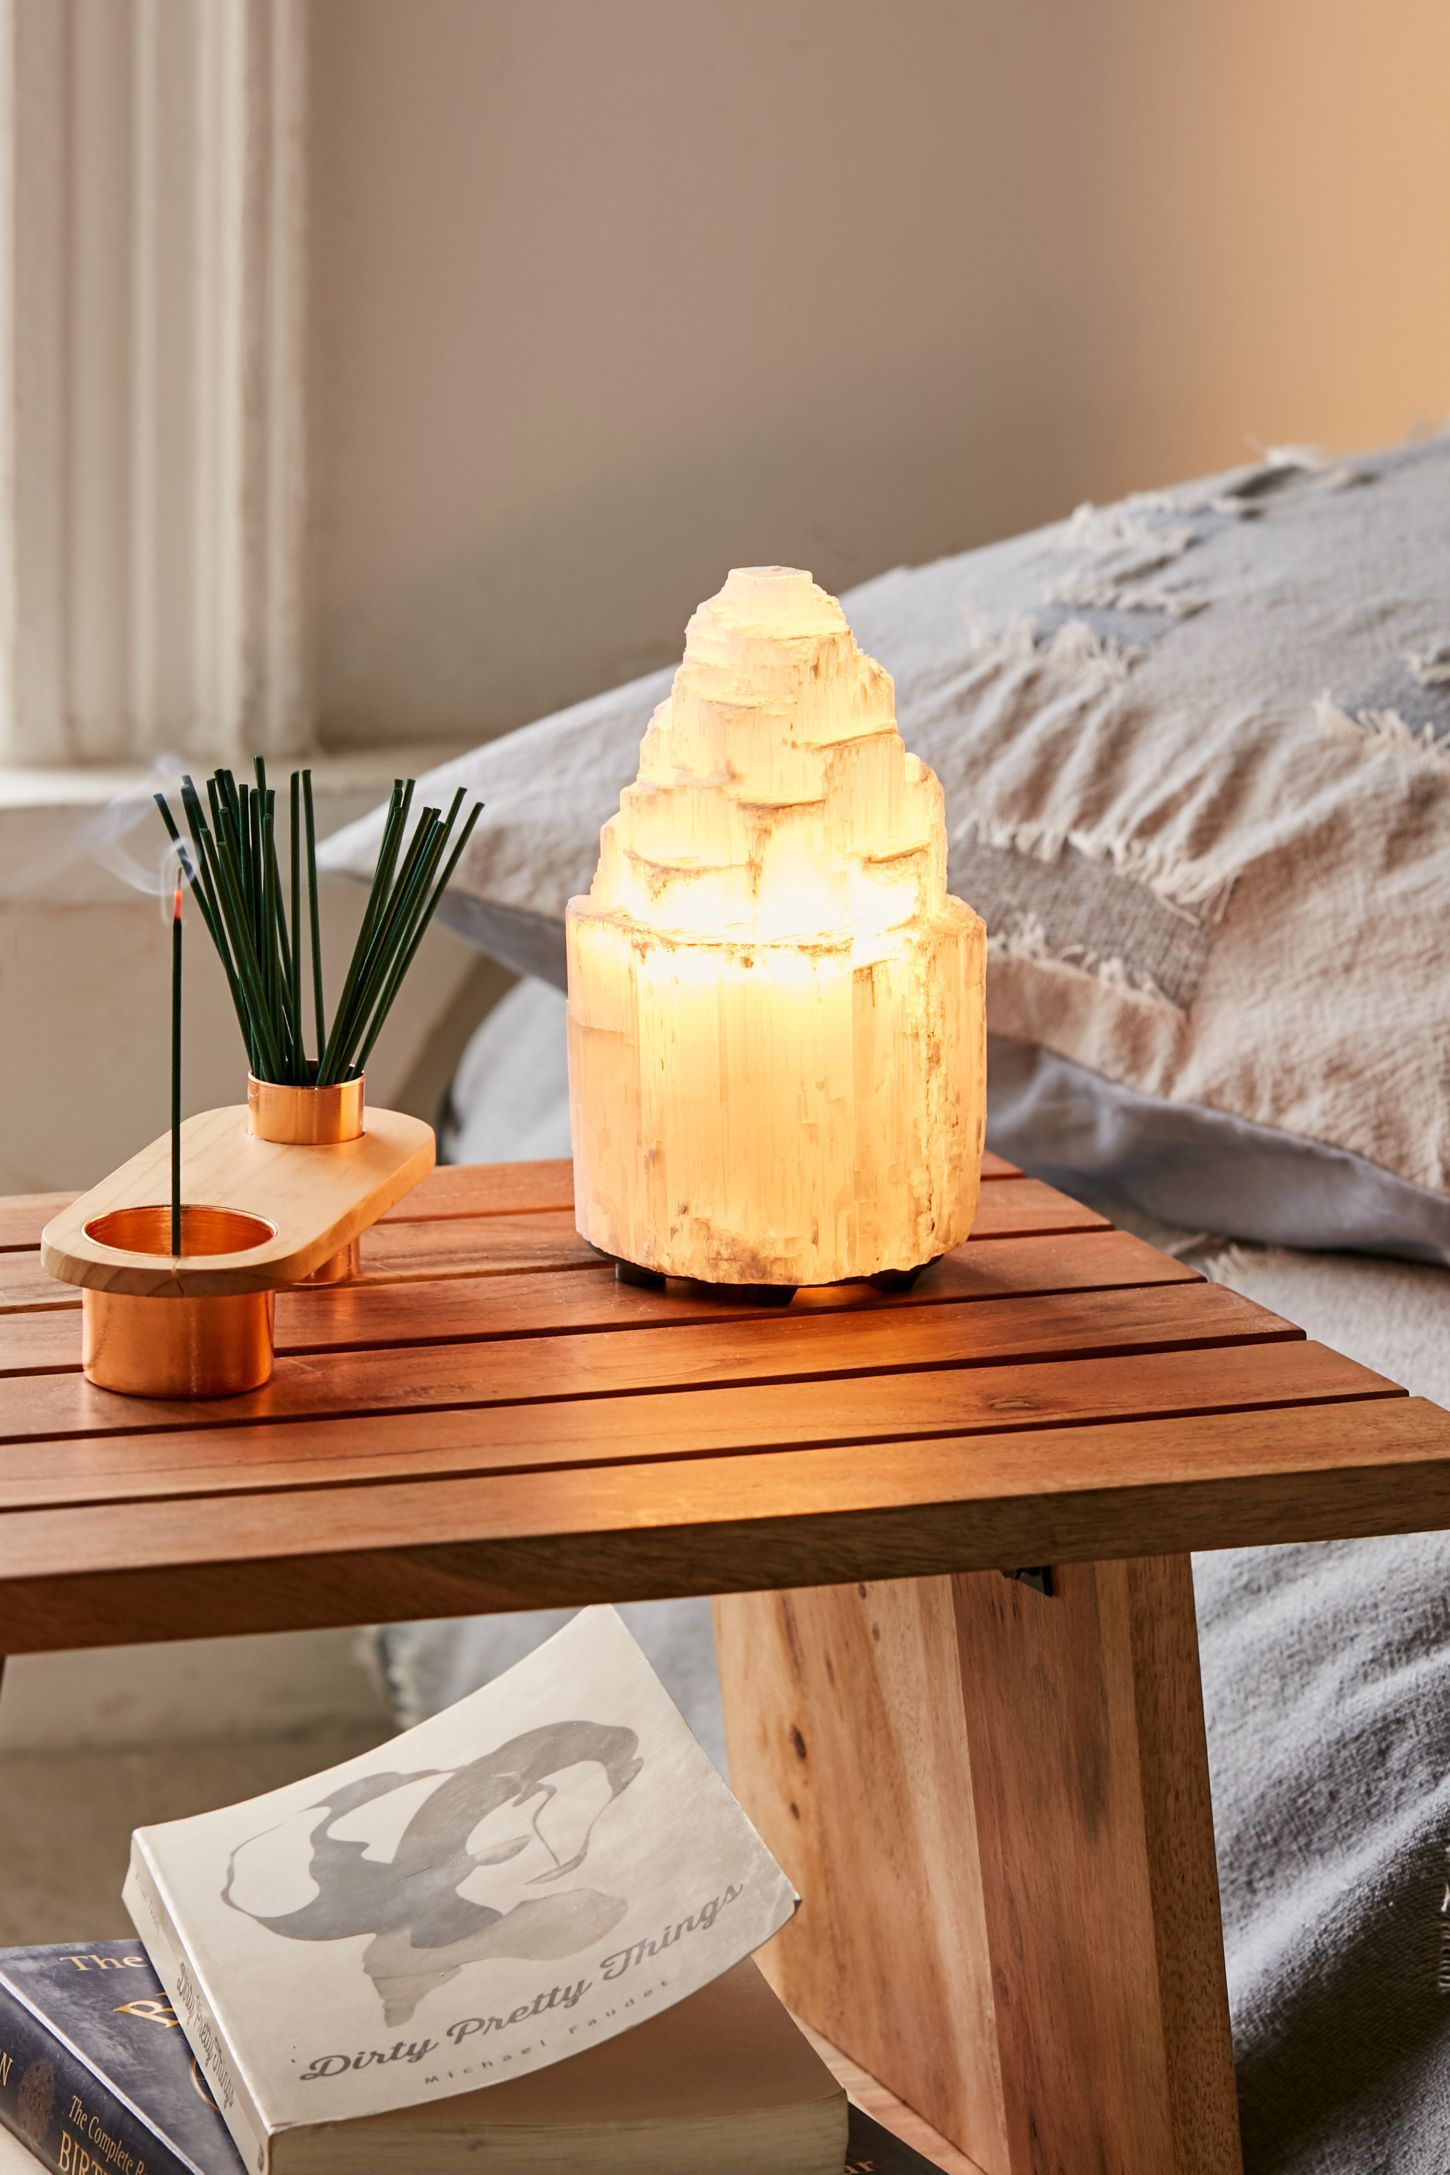 This Is A Way Better Version Of The Himalayan Salt Lamp Trend